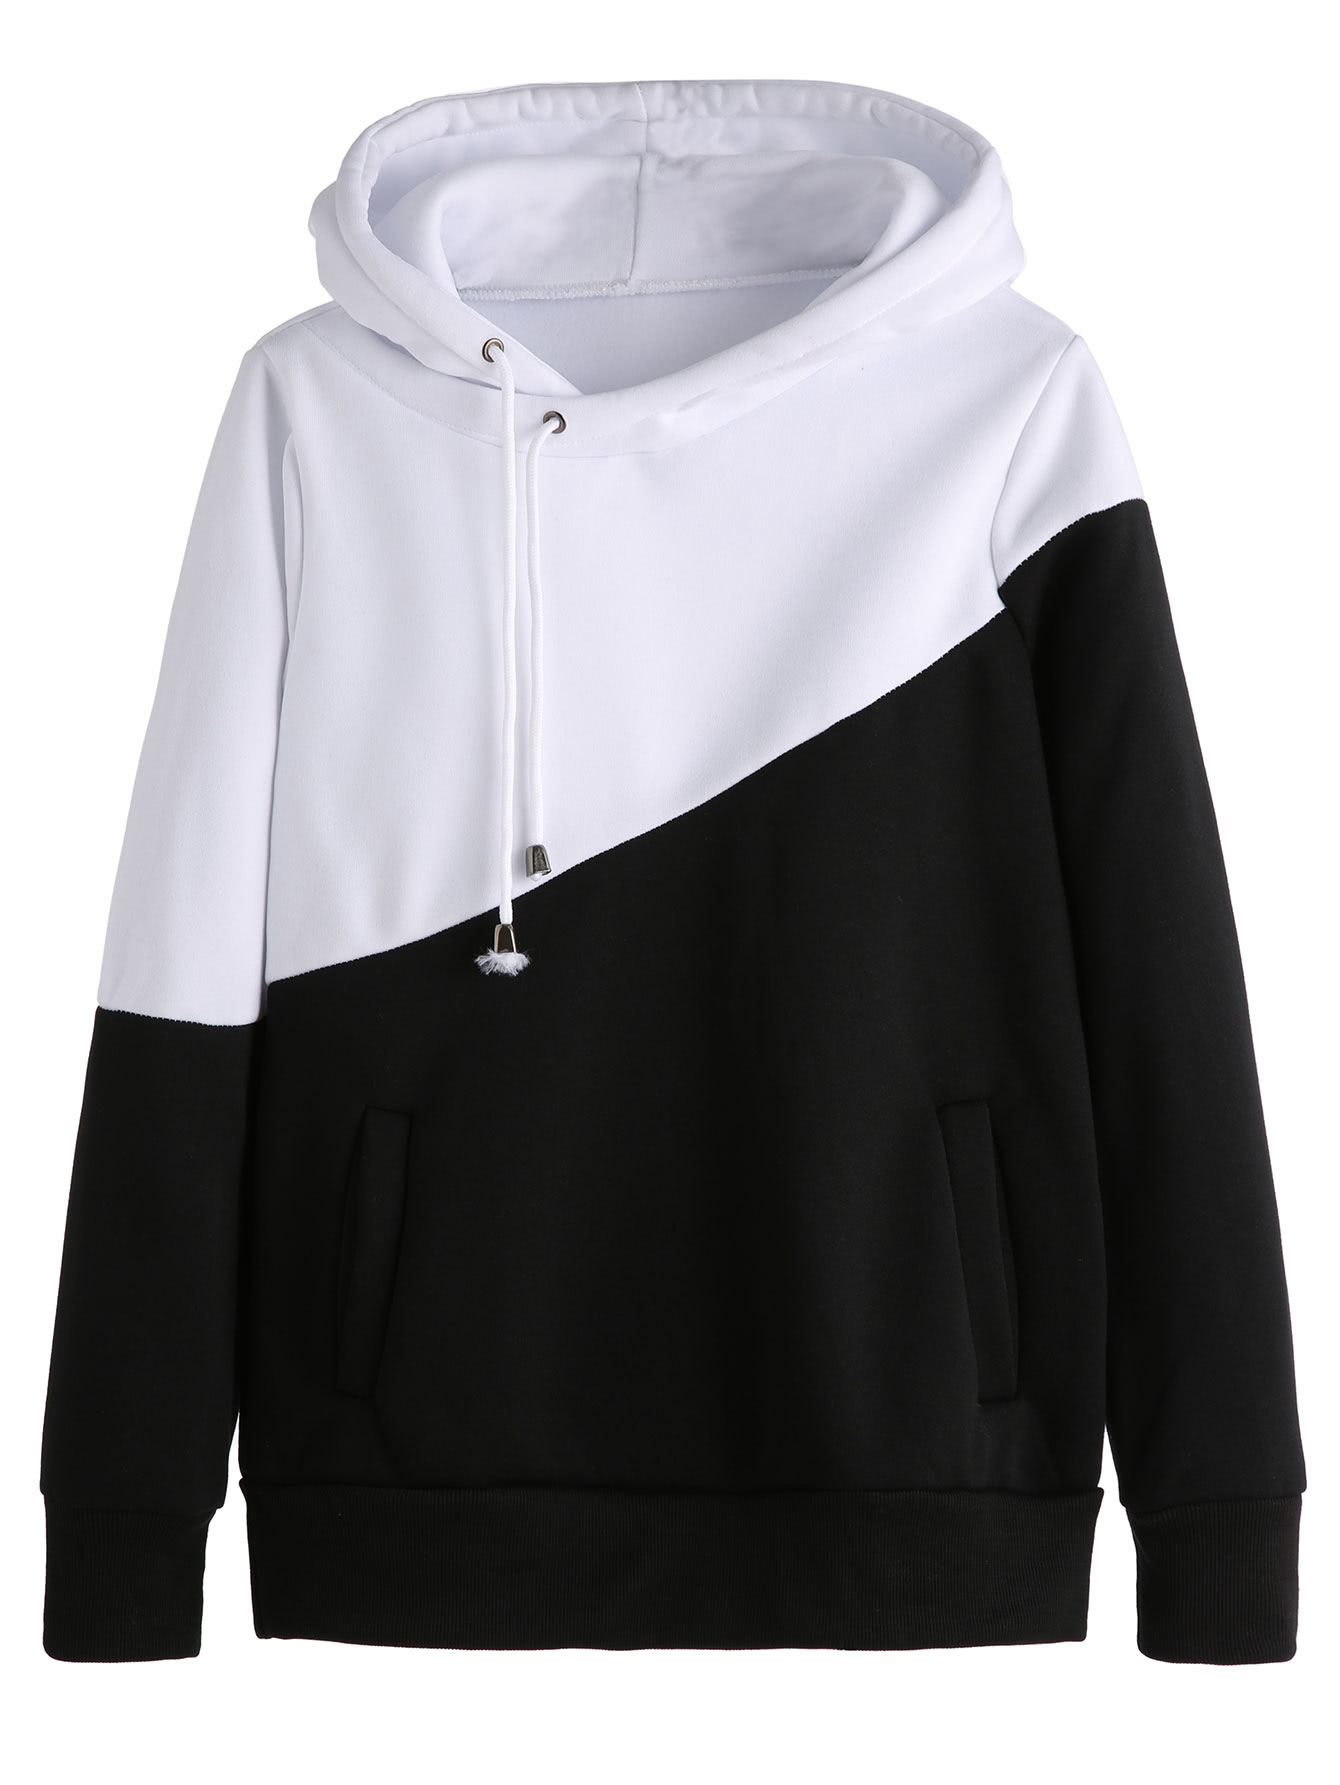 Cut hoodies